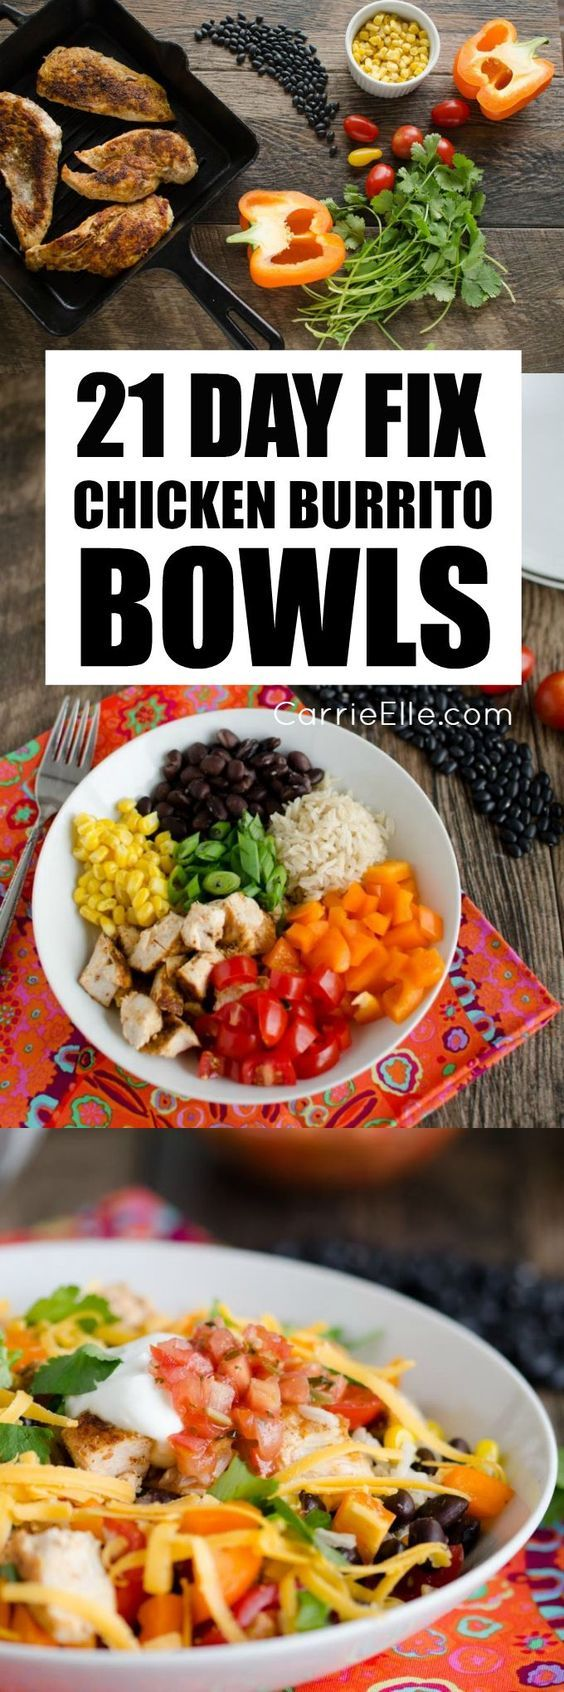 21 Day Fix Chicken Burrito Bowls with Whole Wheat Rice